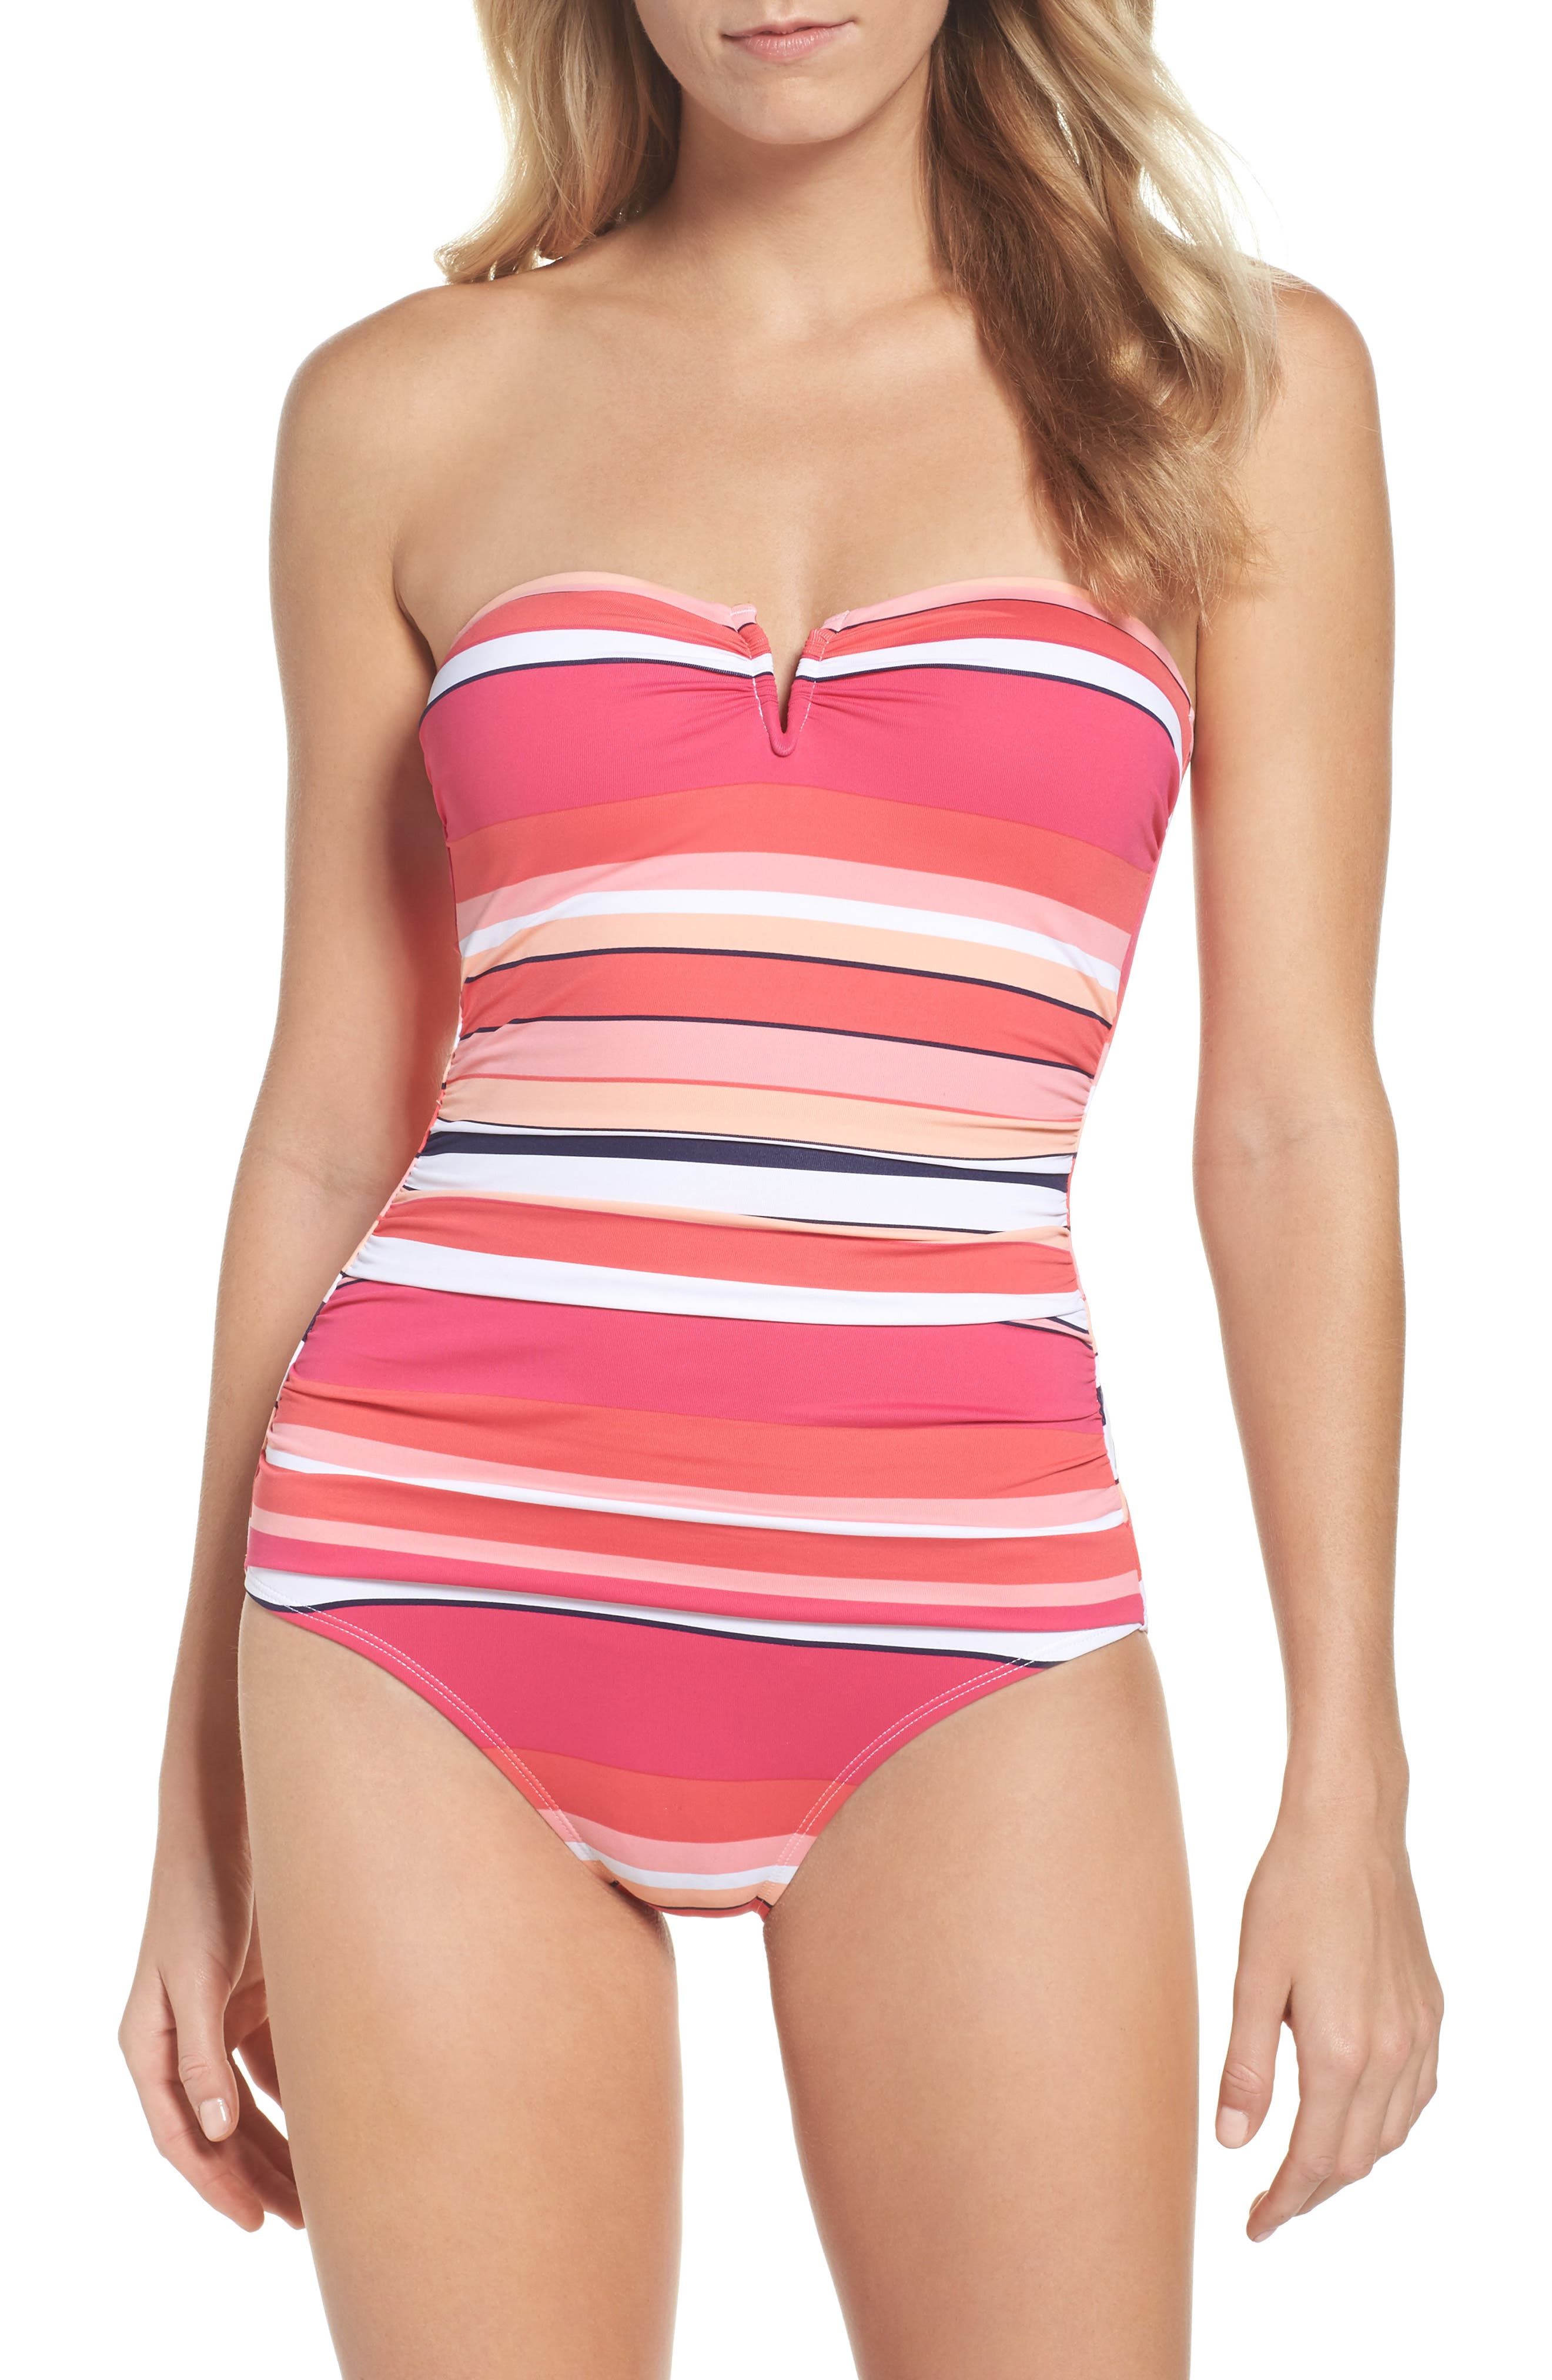 Alternate Image 1 Selected - Tommy Bahama Petals of Paradise One-Piece Swimsuit